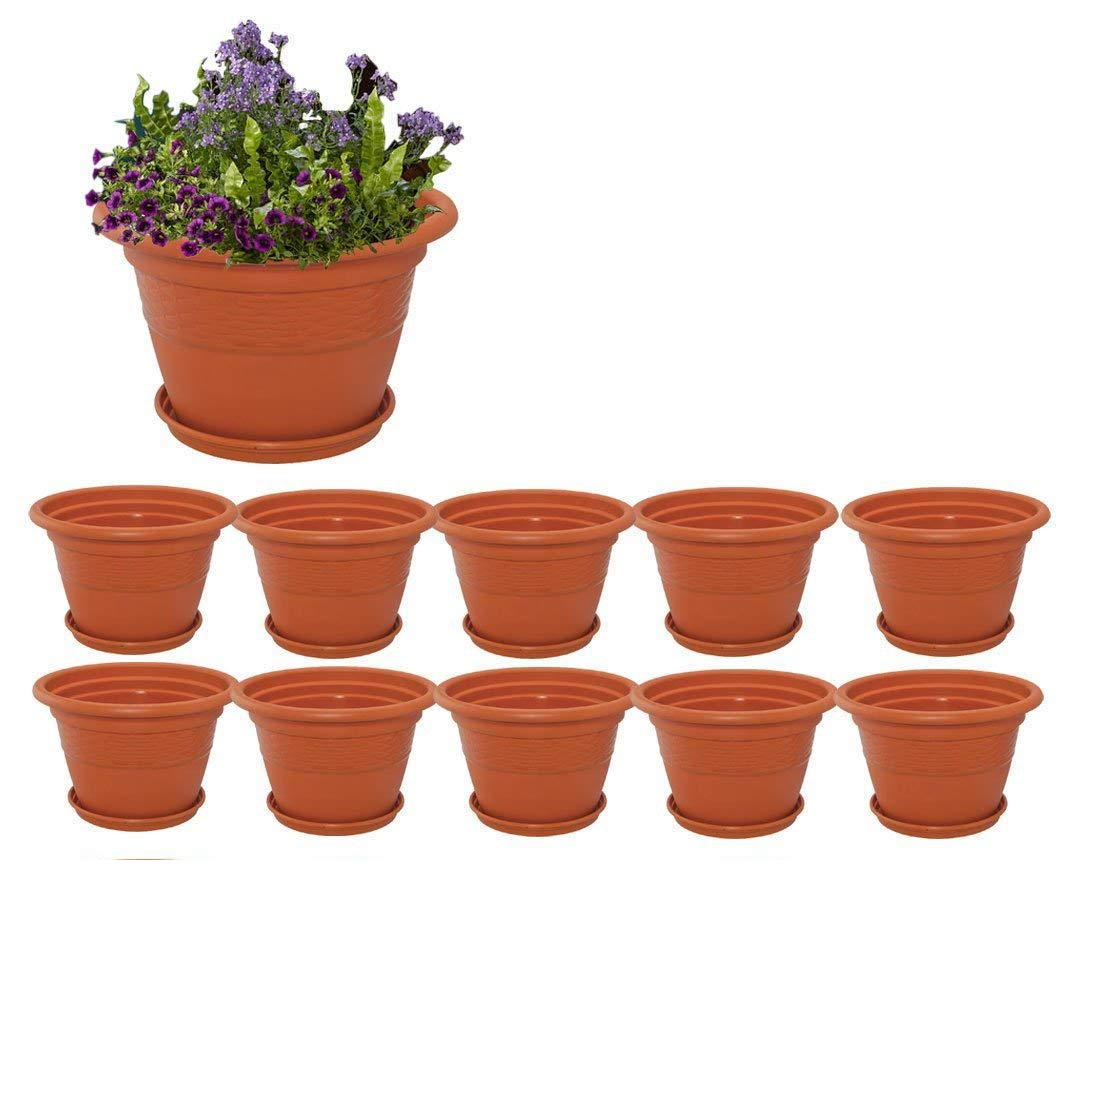 Meded Siti Plast Heavy Duty Plastic Planter Pots with Bottom Tray Color Terracotta (8 Inch, Pack of 10) product image